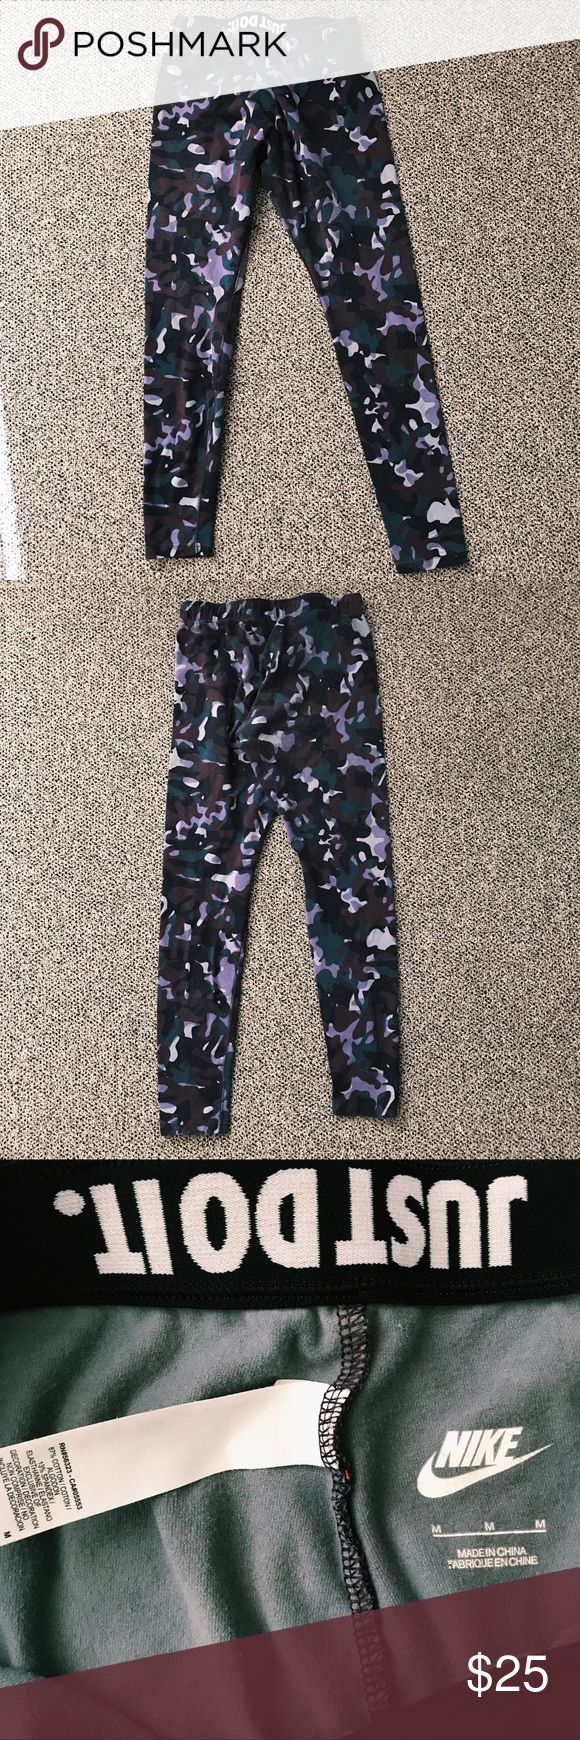 Camo Nike leggings Purple/dark green/black camouflage Nike leggings! Good condition. These are great to work out in and super comfortable if you just want to wear them out. I usually wear a large size but these still fit well even though they are mediums, so if you're a medium or a large these will fit perfectly. Cotton material Nike Pants Leggings